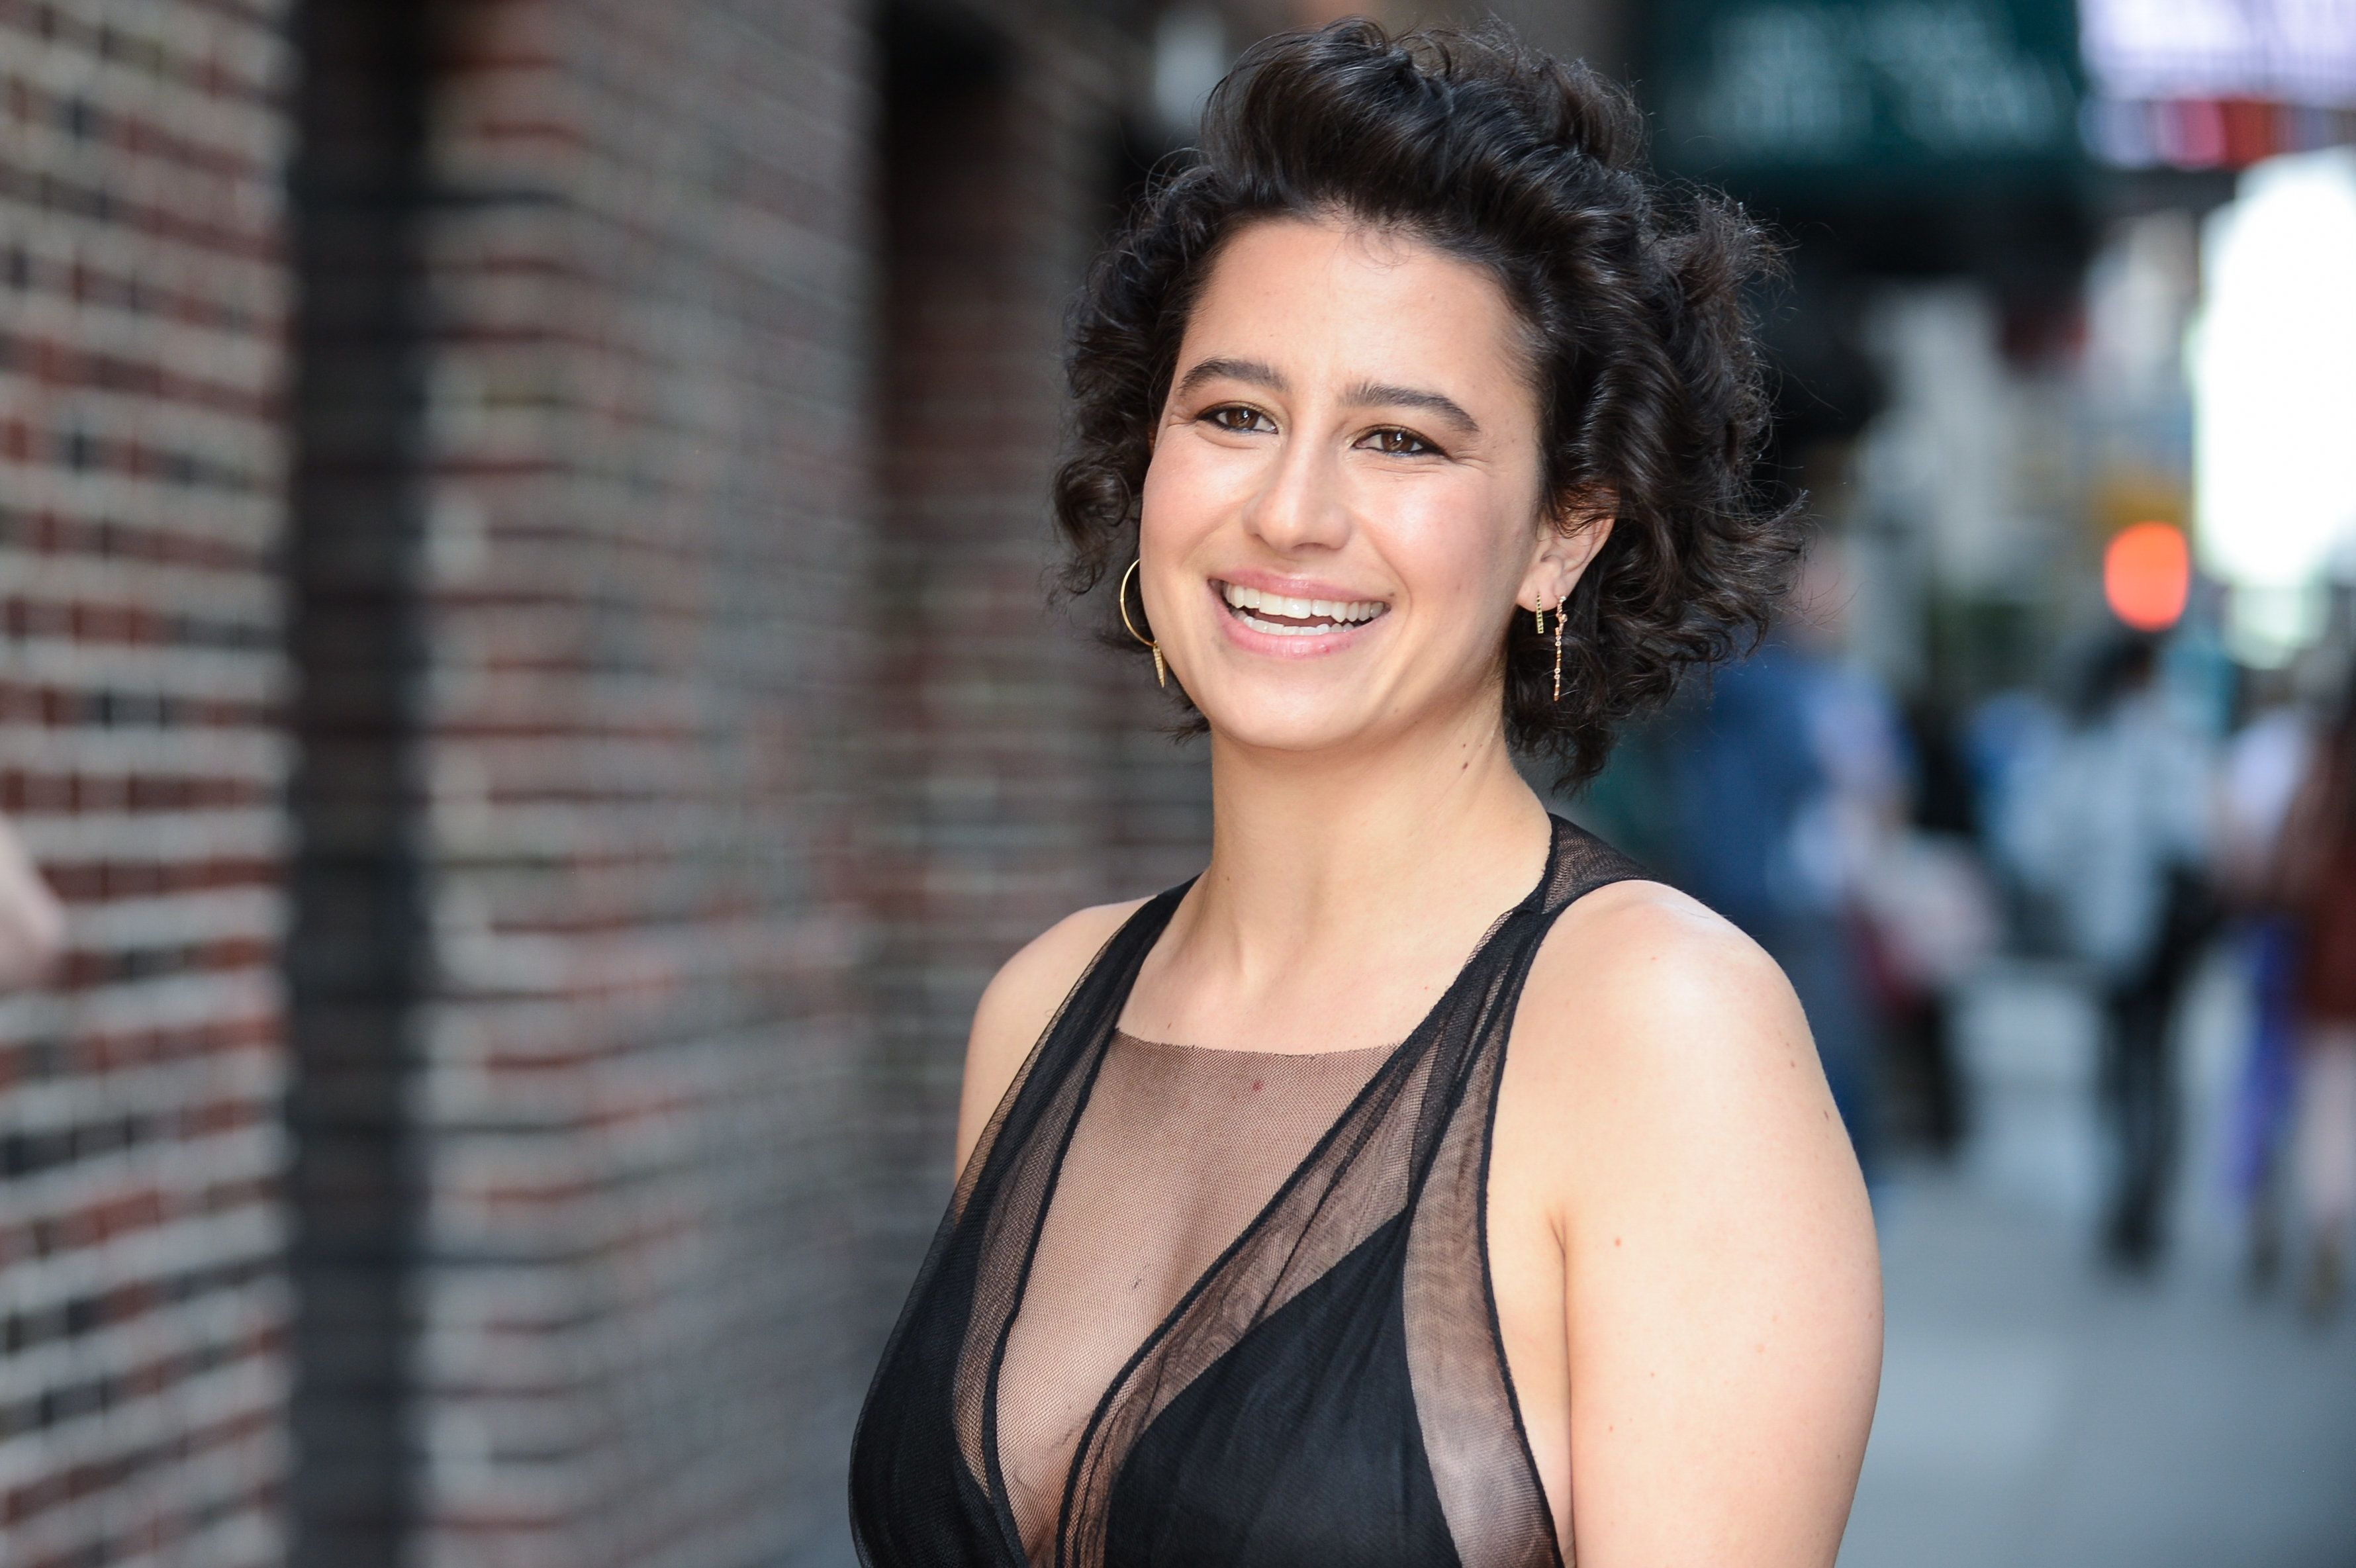 Ilana Glazer Has No Problem Firing Men For Sexual